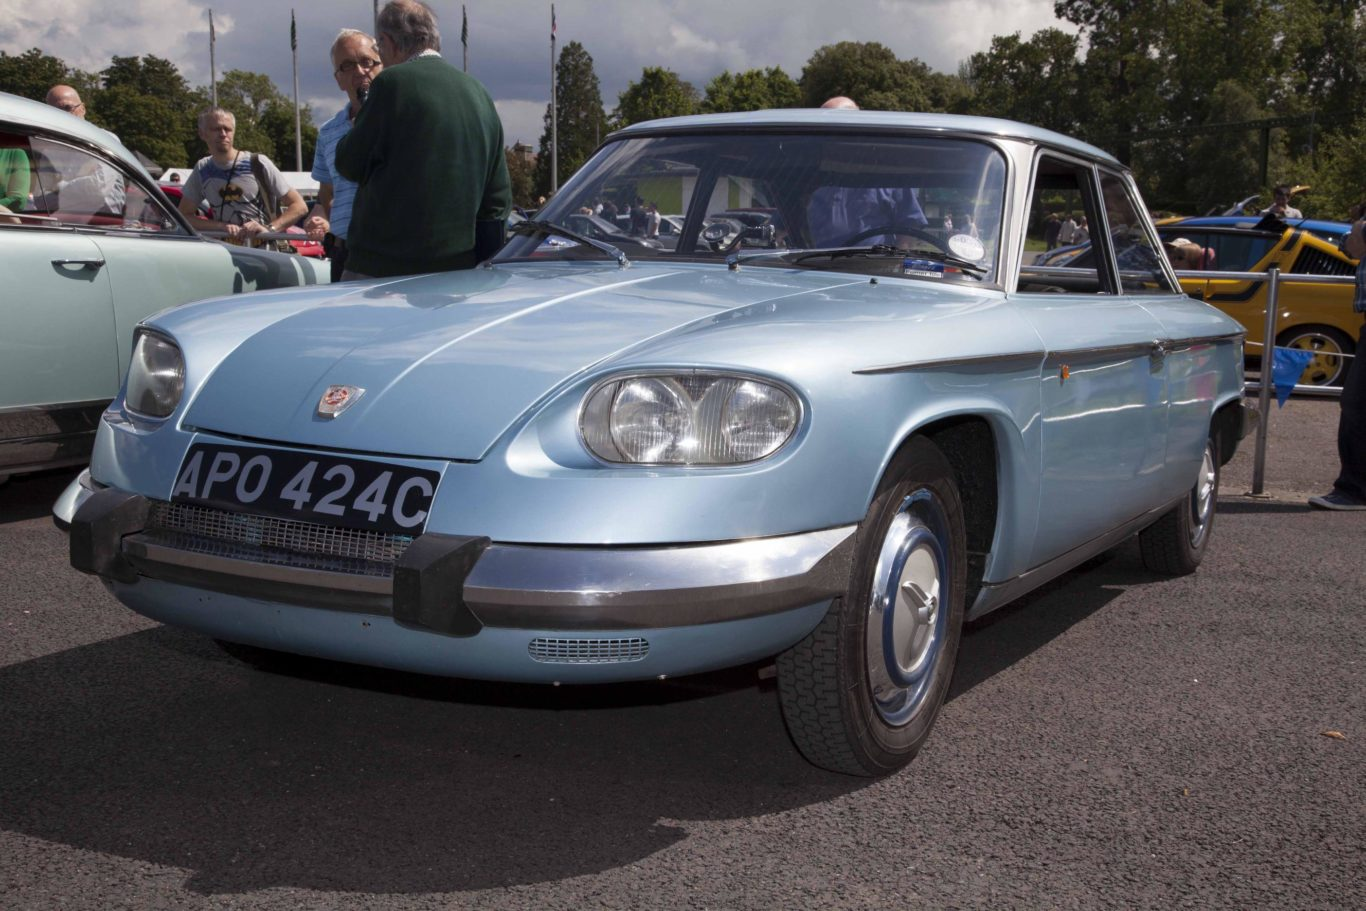 The 24 was the last car Panhard built before concentrating on military vehicles